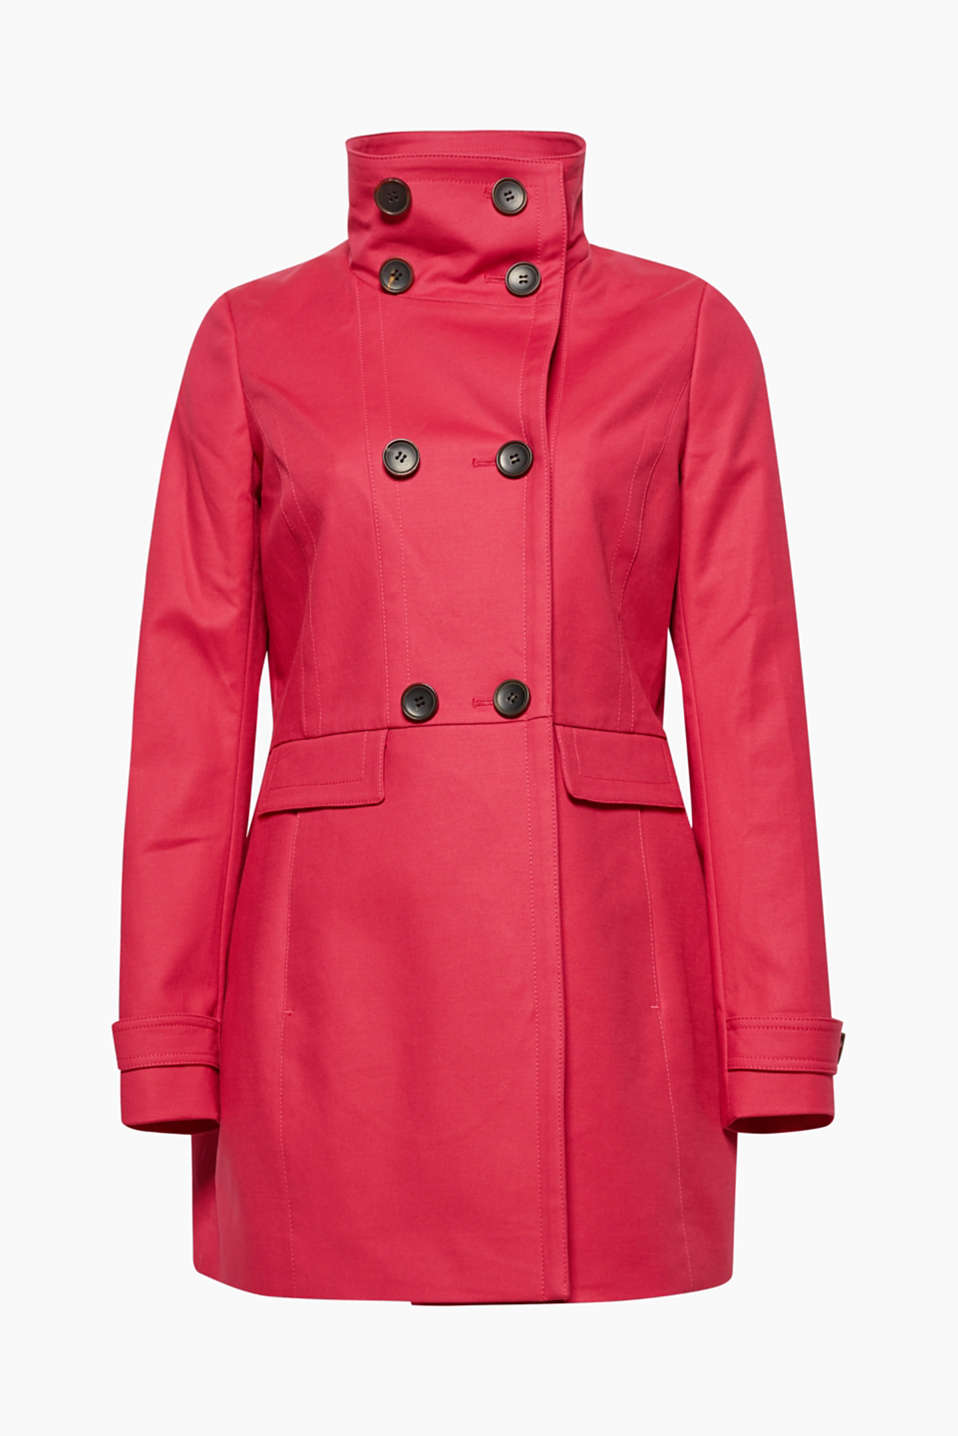 A high collar and the double-breasted button placket give this fitted stretch coat a new chic!